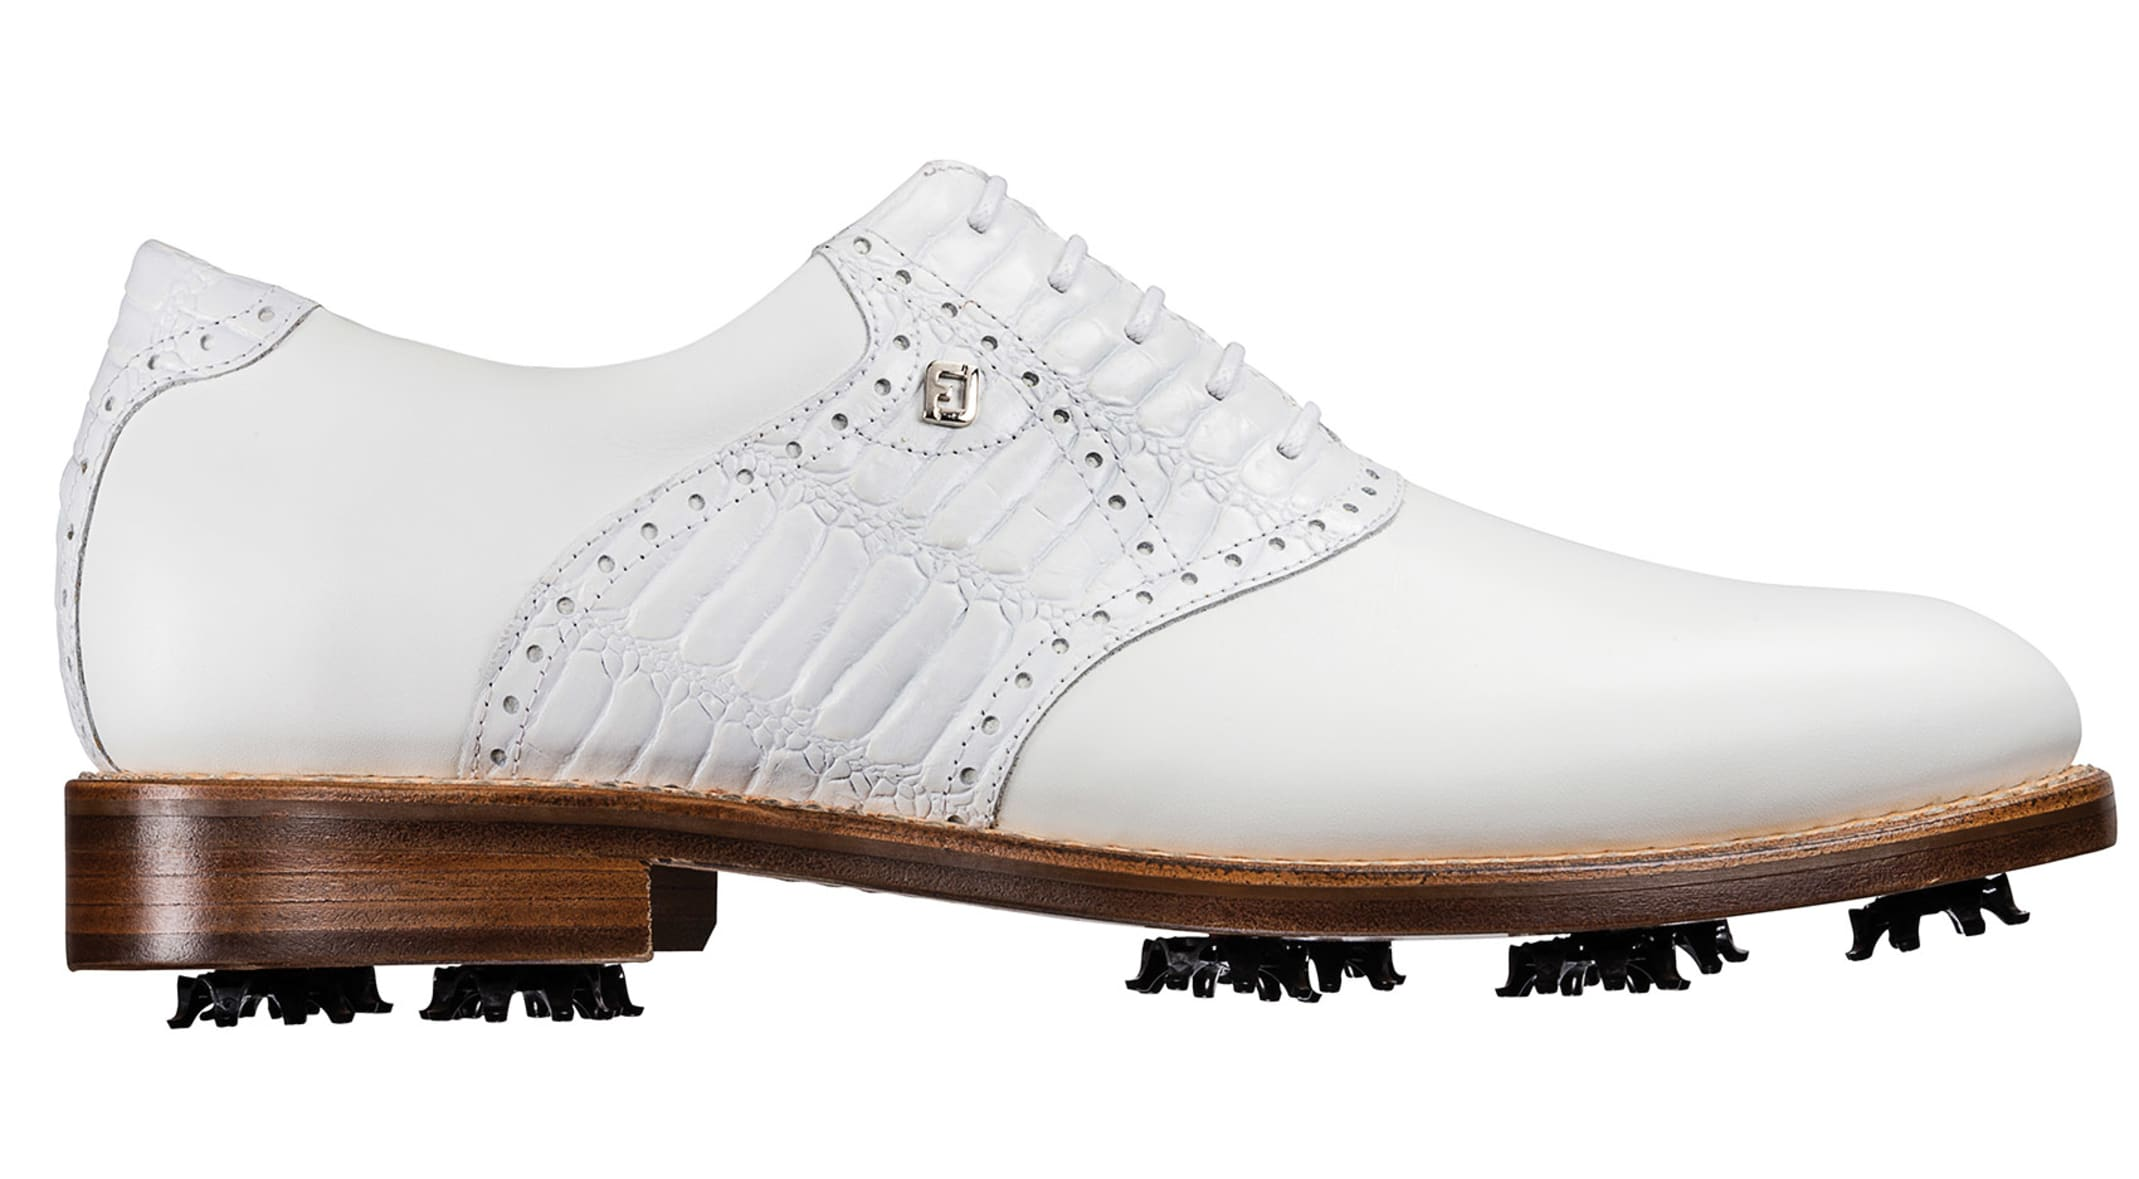 5de6038cf FootJoy has launched the new FJ 1857 Collection luxury shoe and apparel  line